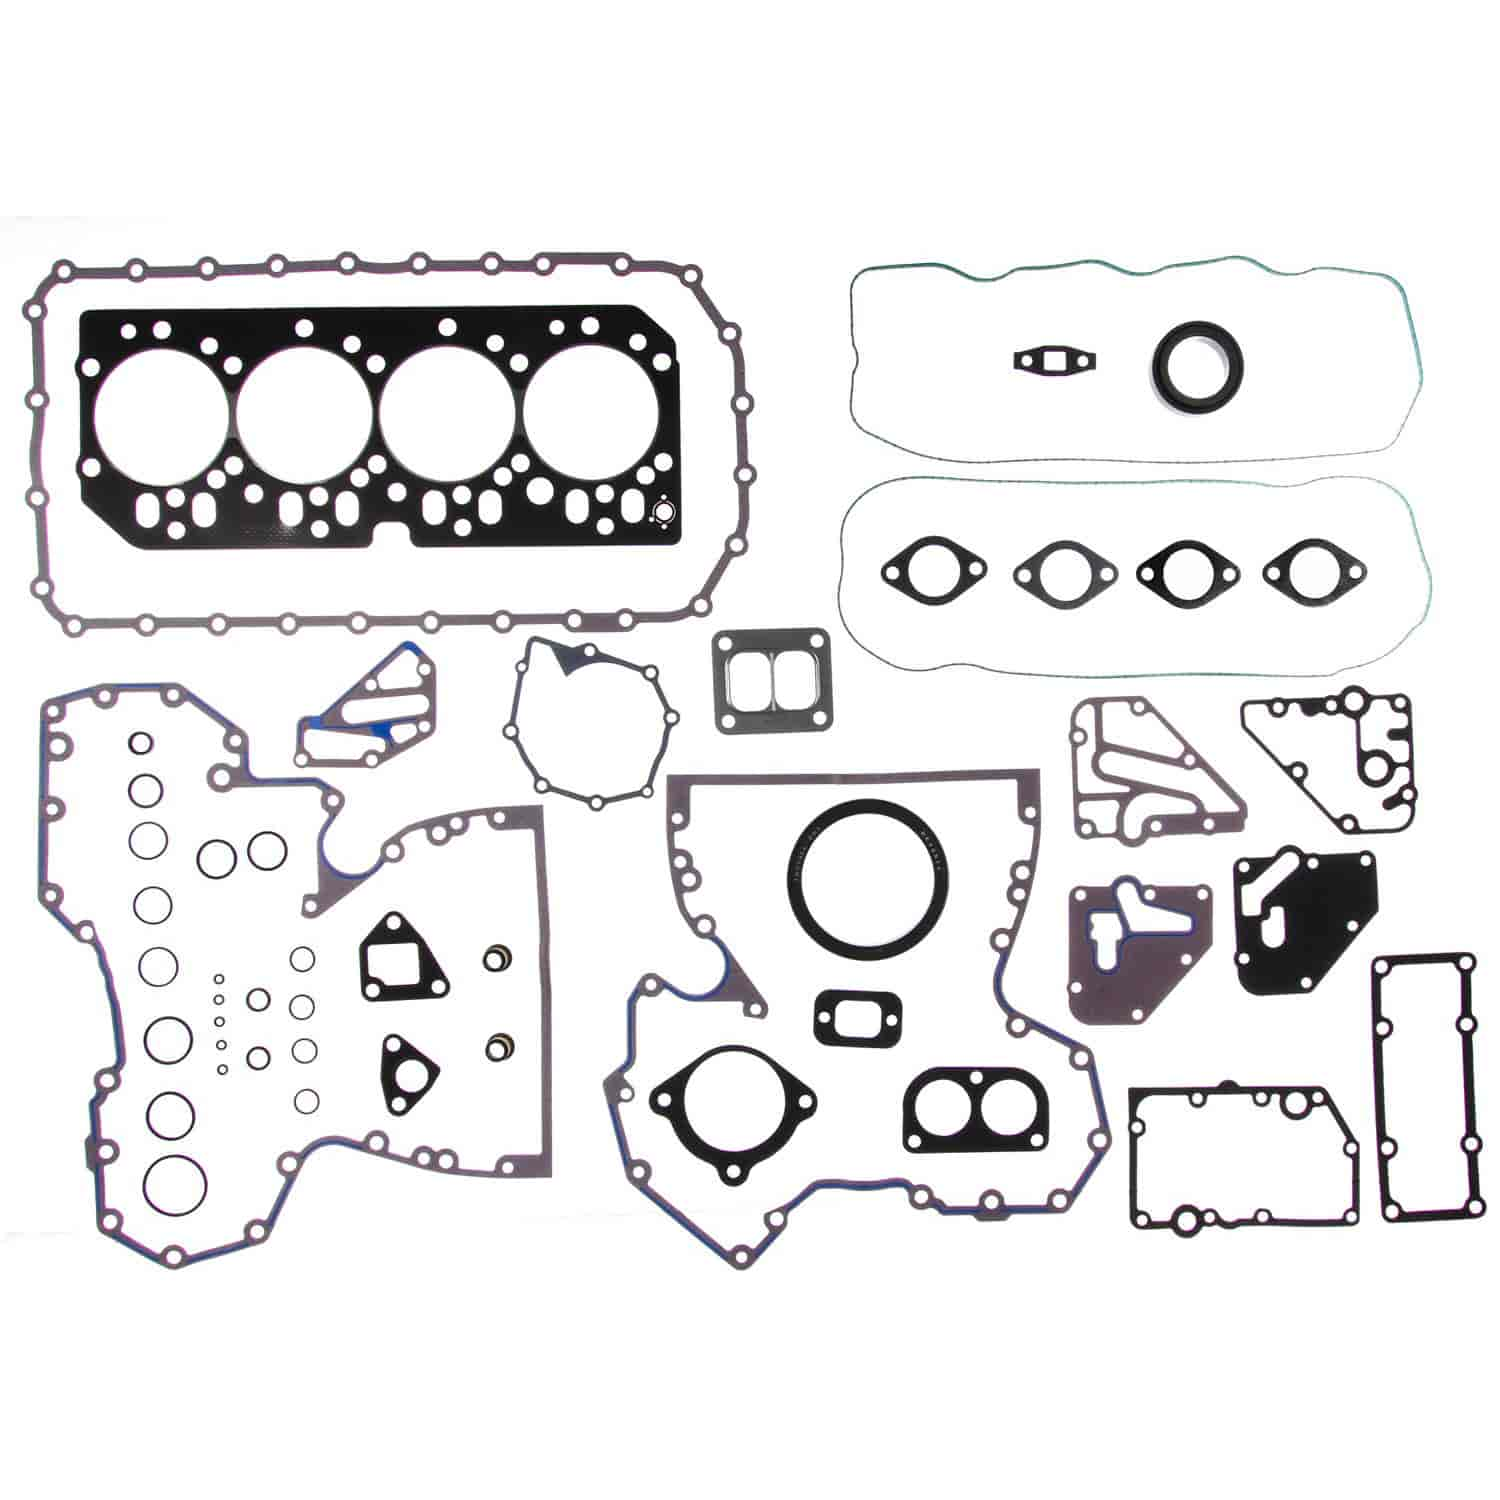 john deere 6068 engine parts diagrams